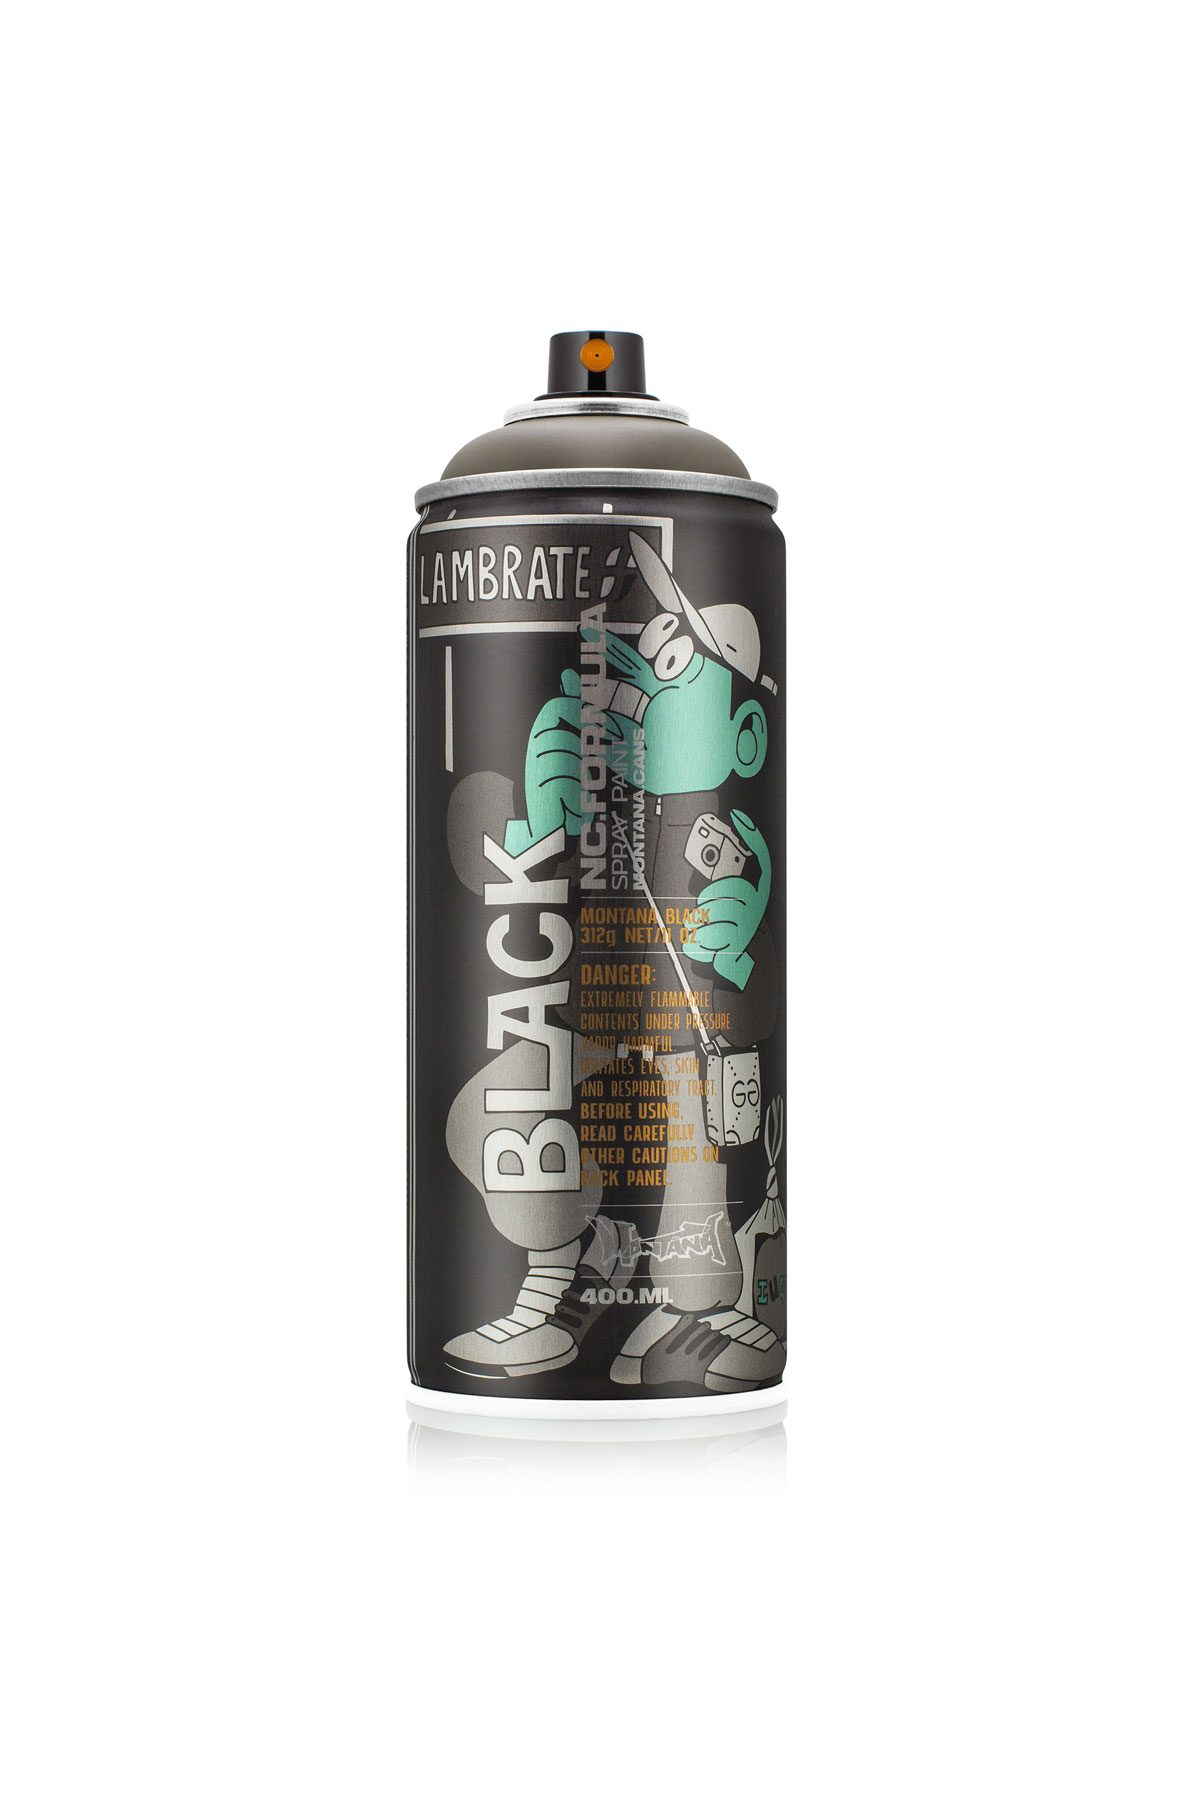 Montana BLACK ARTIST EDITION - LUGOSIS 400ml